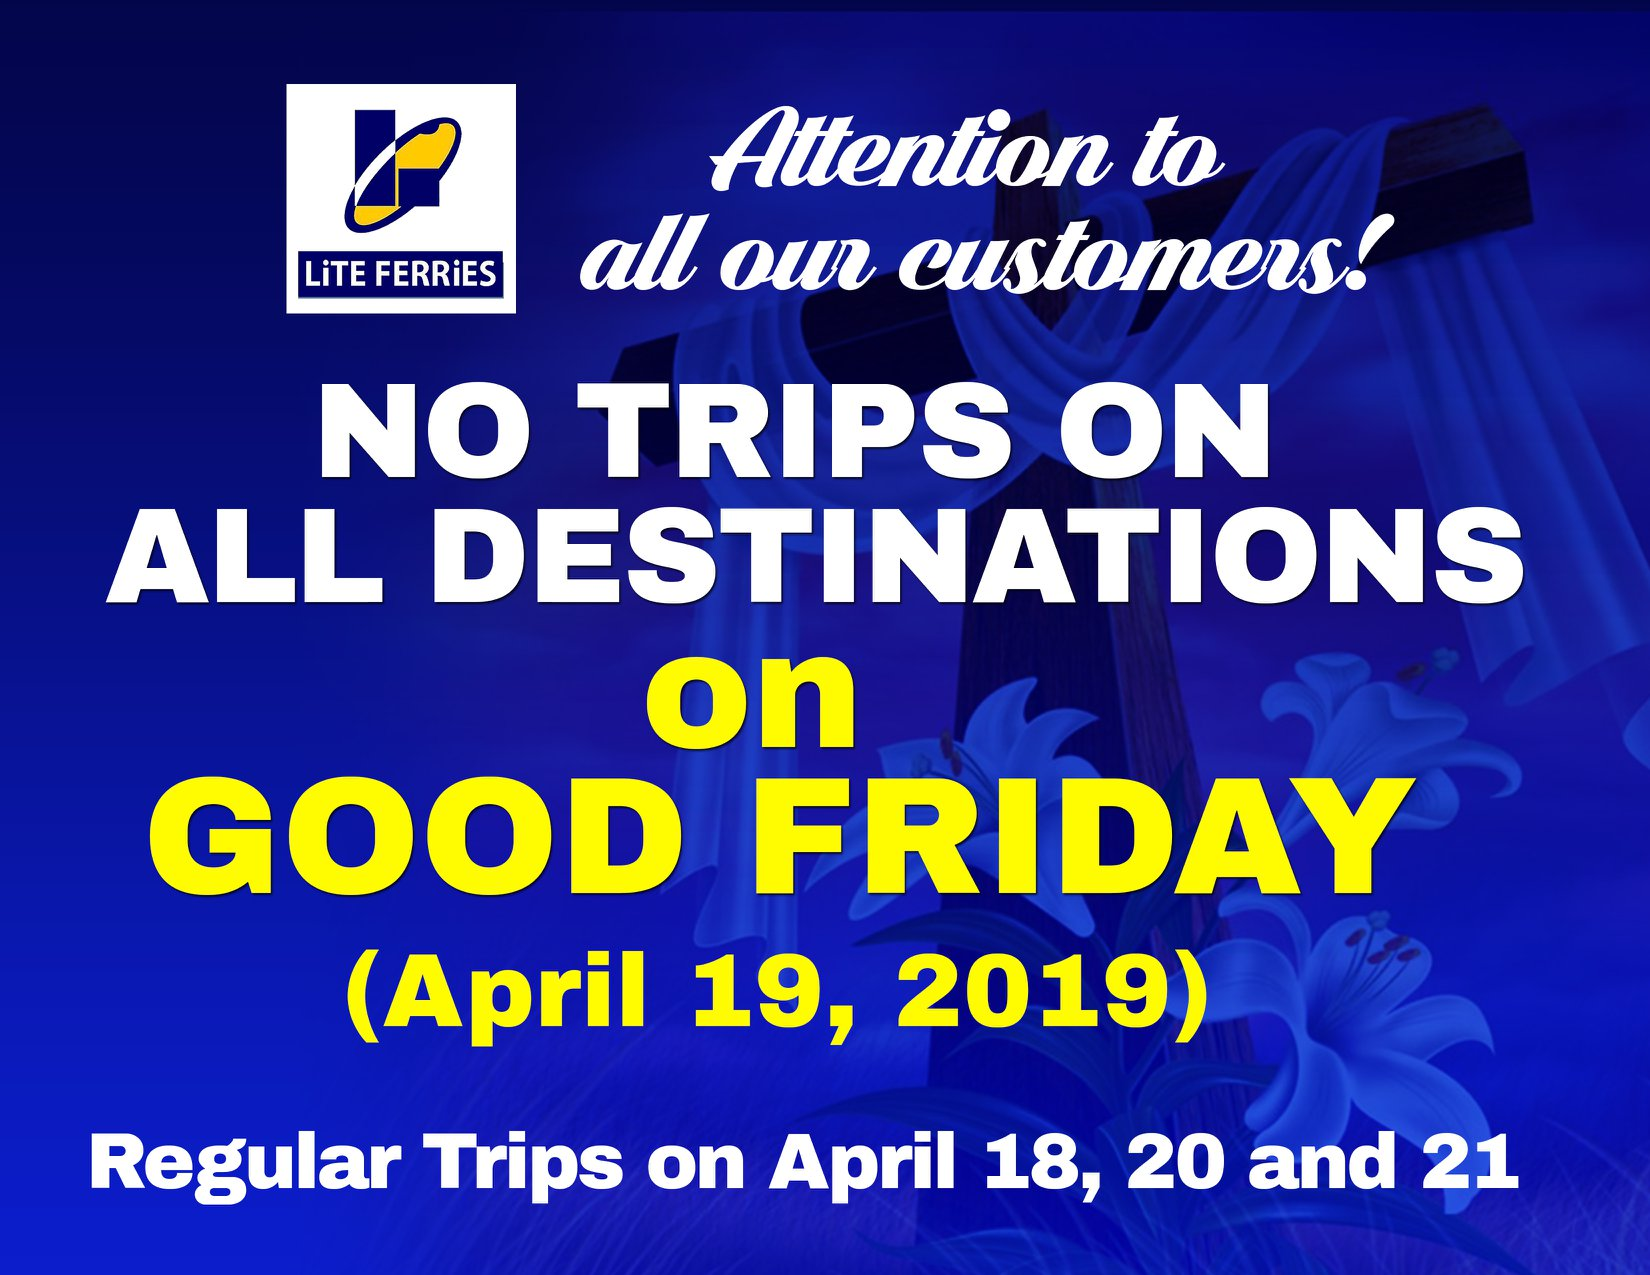 No trips for Lite Ferry on 'Good Friday'